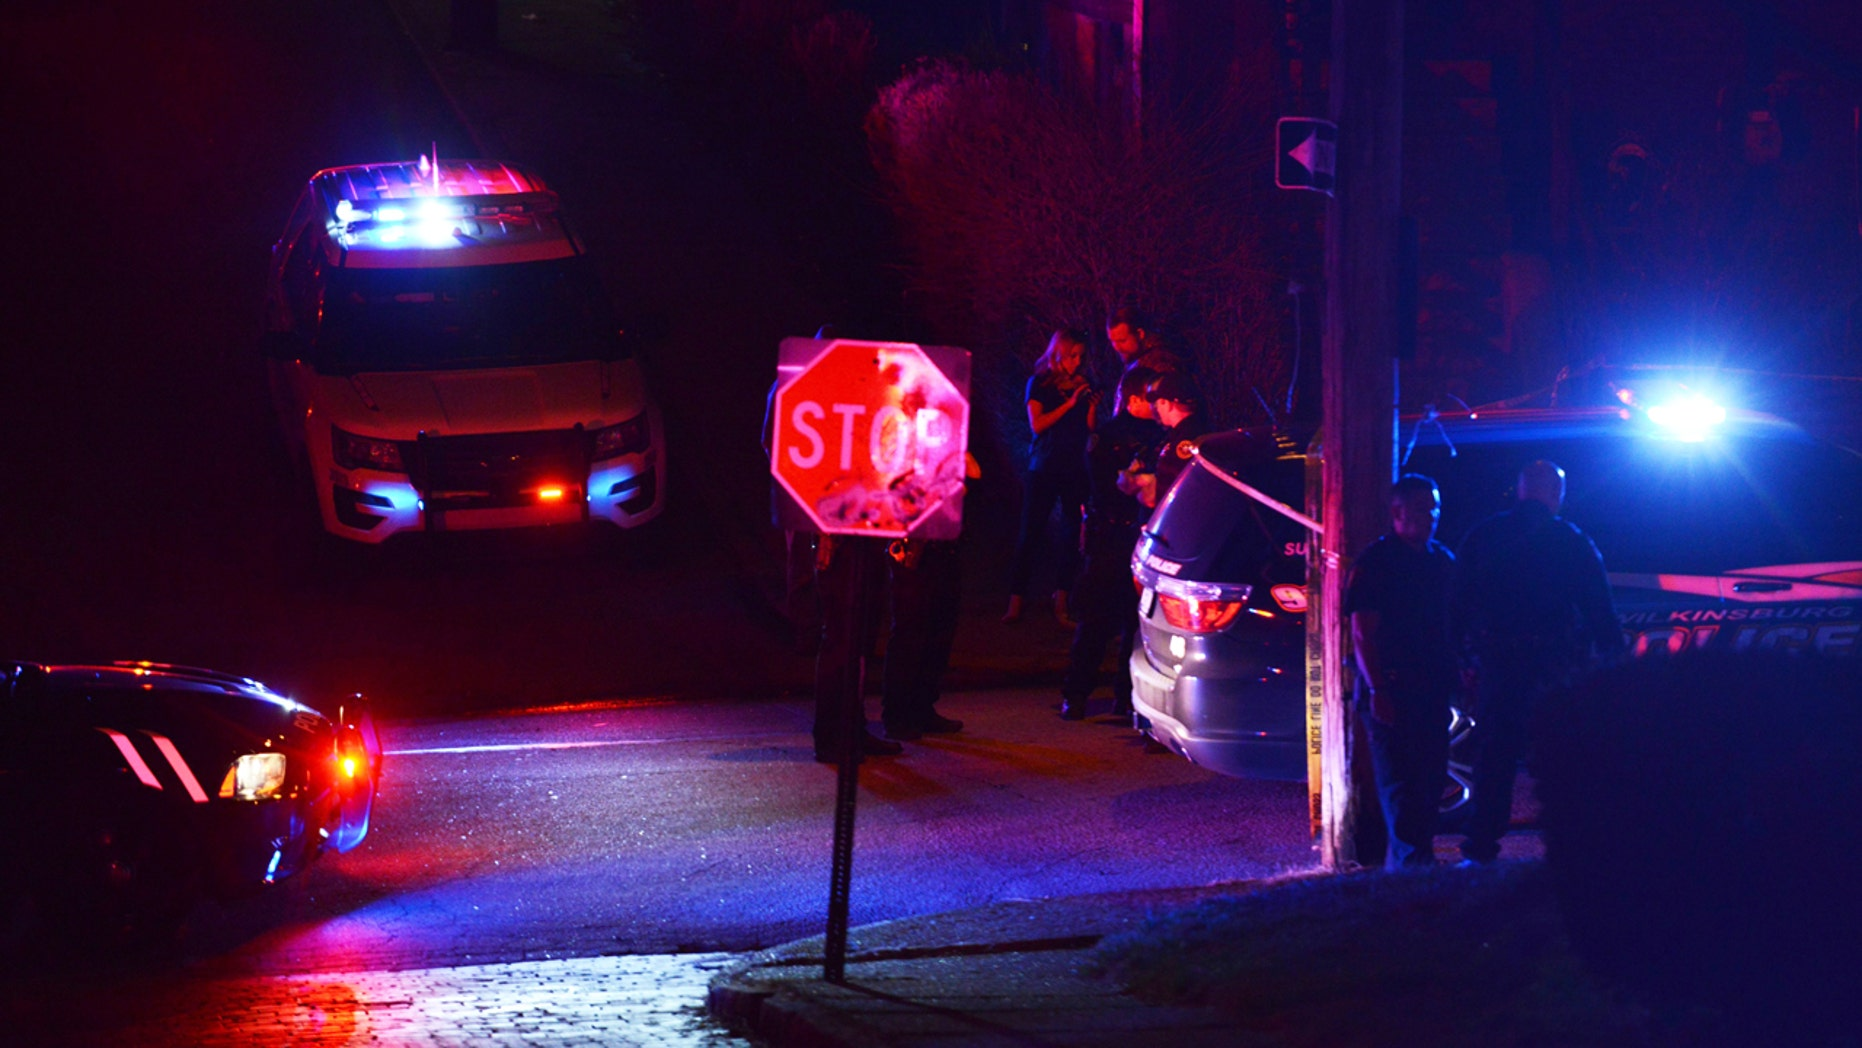 March 9, 2016:  Police investigate the scene after a deadly shooting in Wilkinsburg, Pa. Pittsburgh television station WTAE said Wednesday it had fired anchorwoman Wendy Bell over racial comments she posted on Facebook about the ambush shooting that left five people and an unborn baby dead